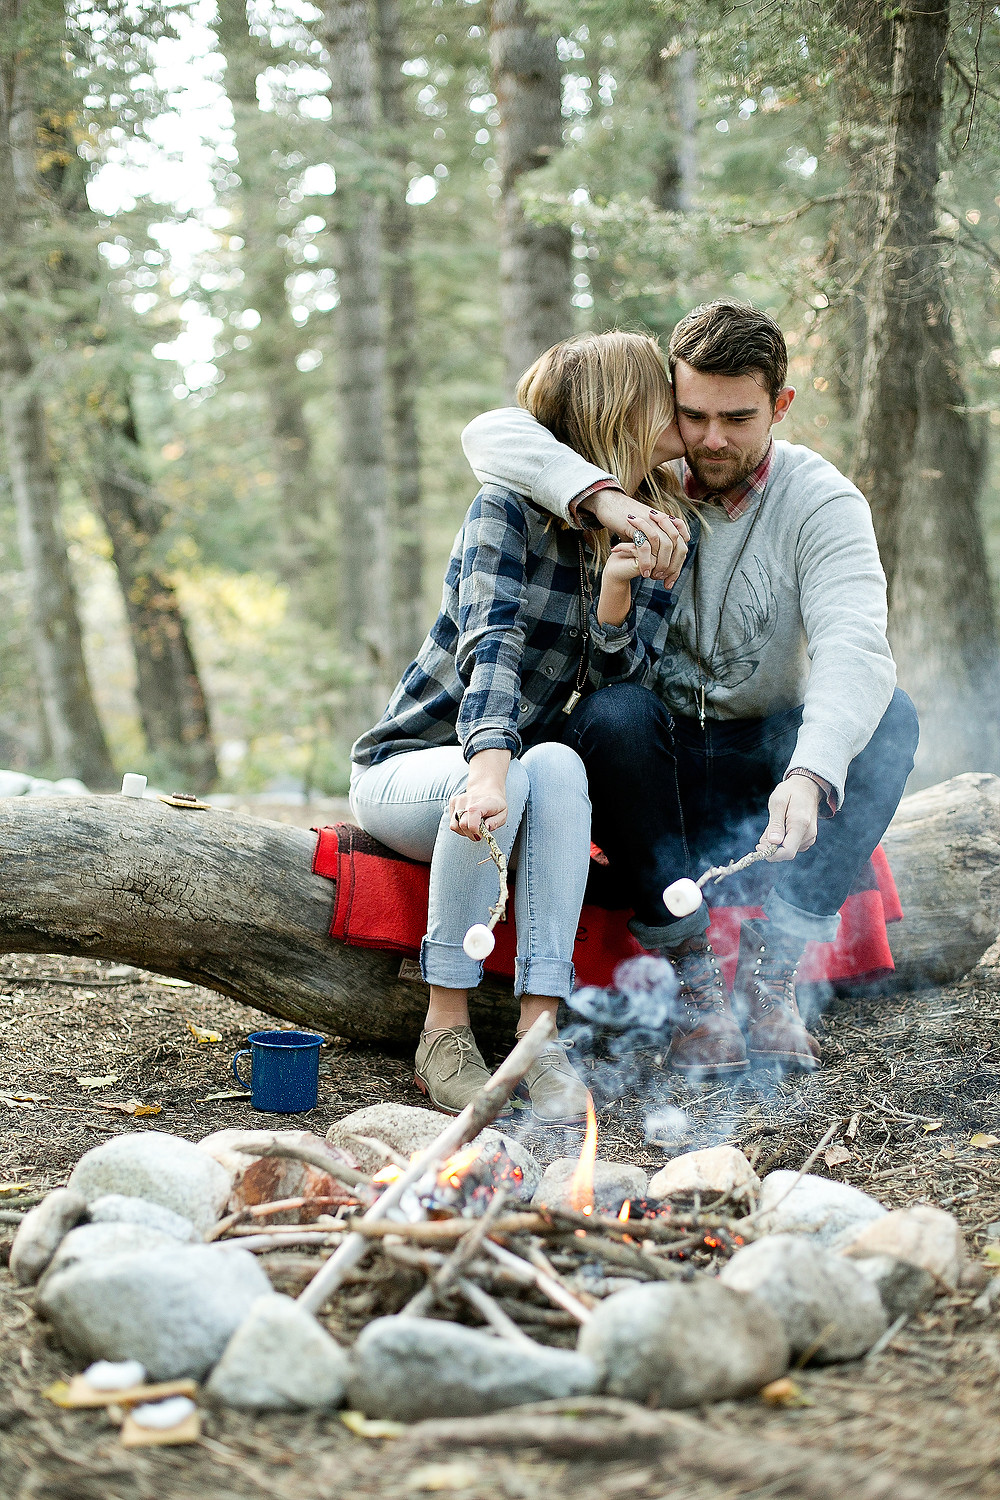 boy has his arm around girl at campfire roasting marshmallows